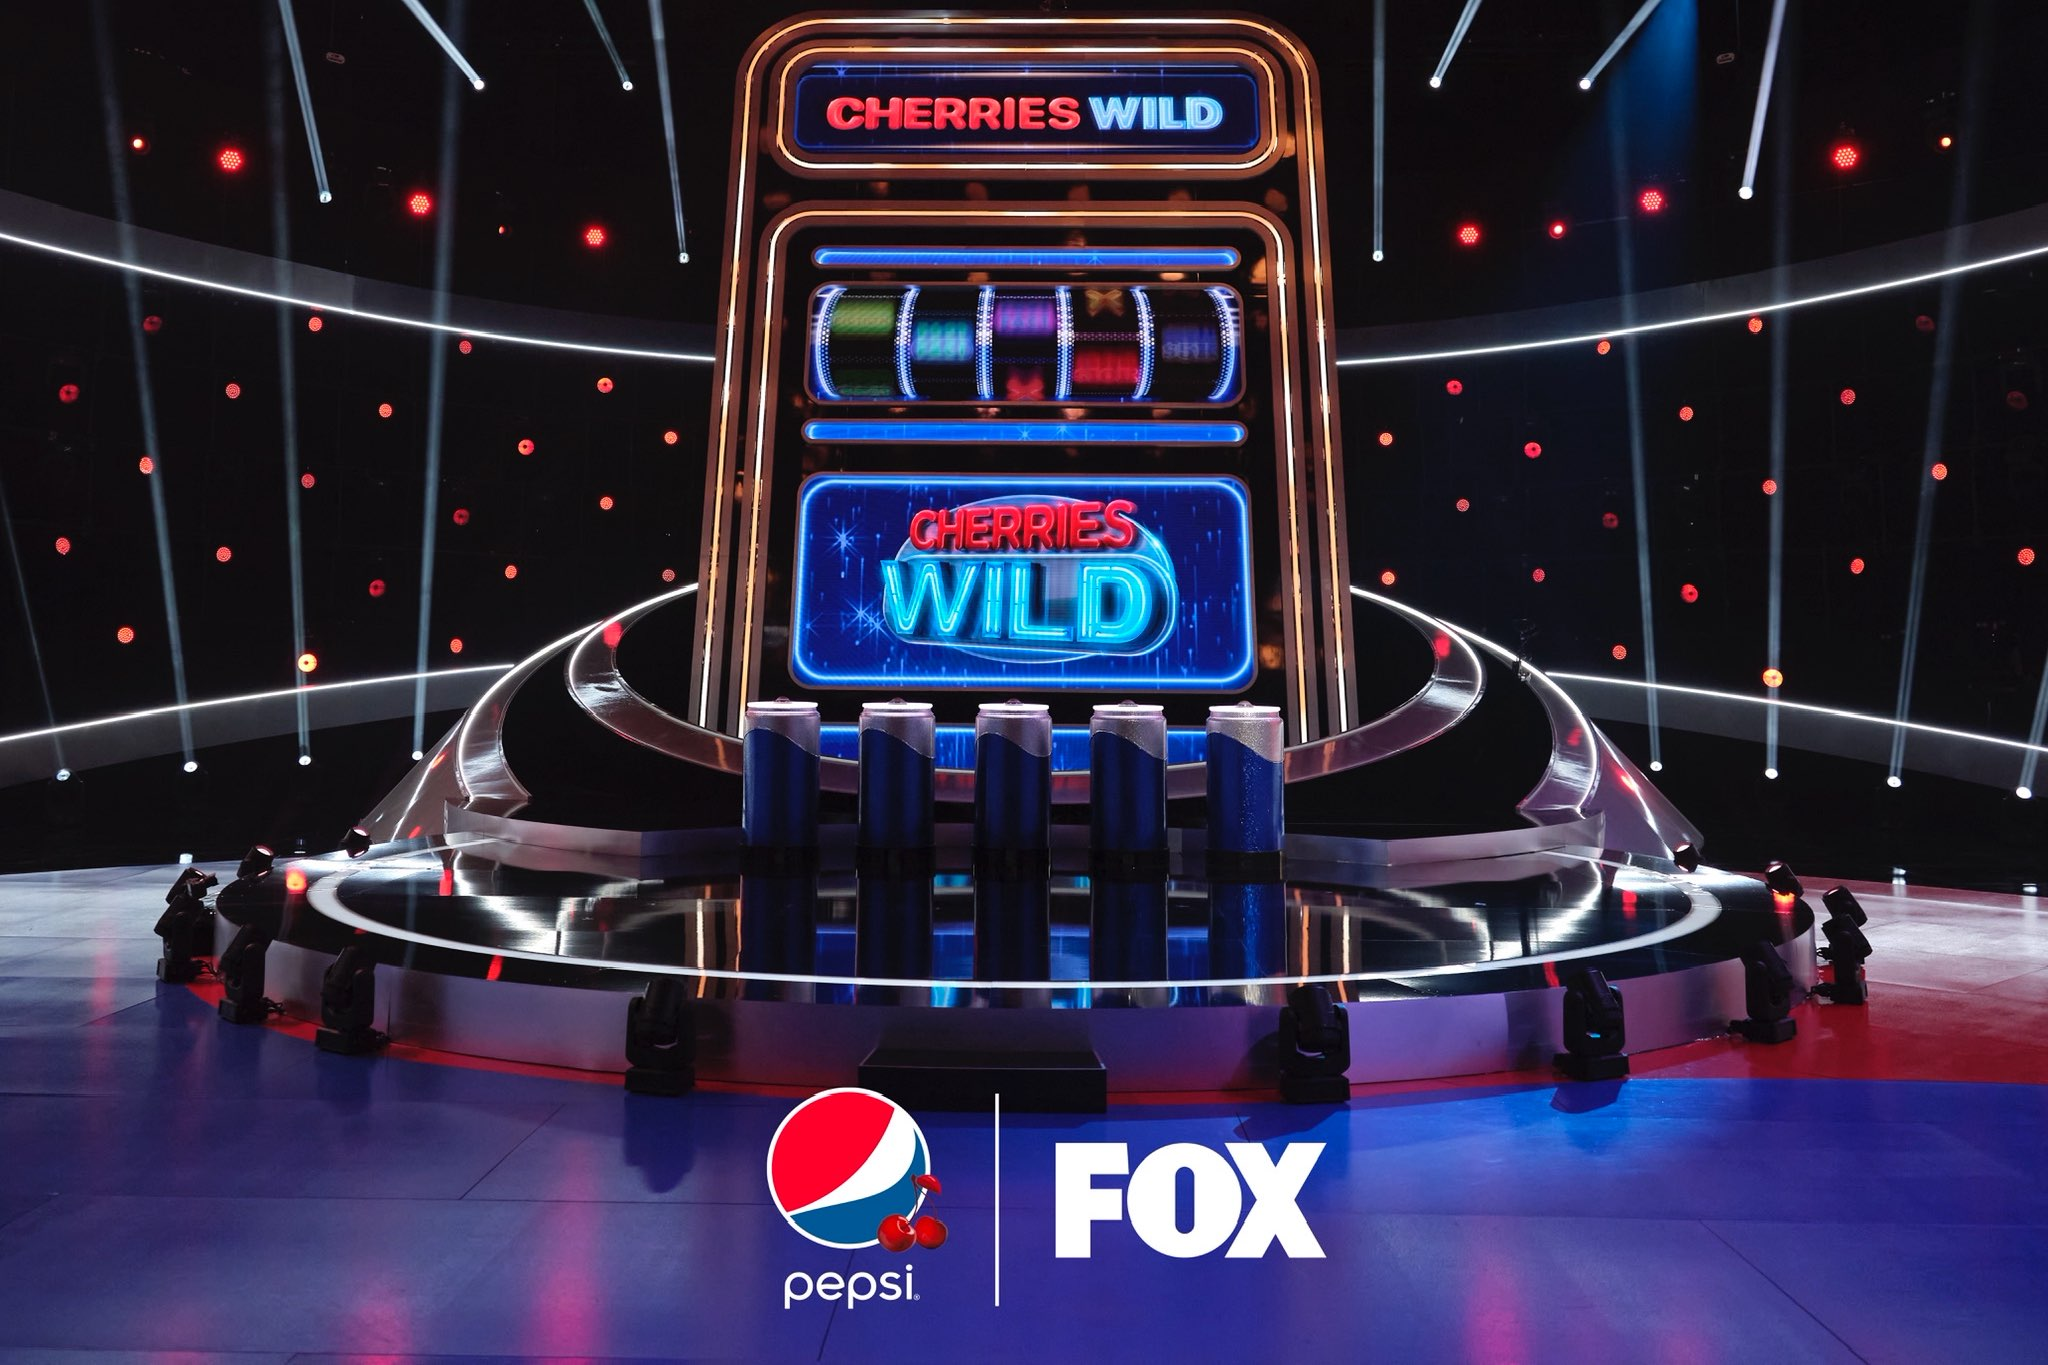 Pepsi and Fox hook up for new 'Cherries Wild' game show in branded integration deal